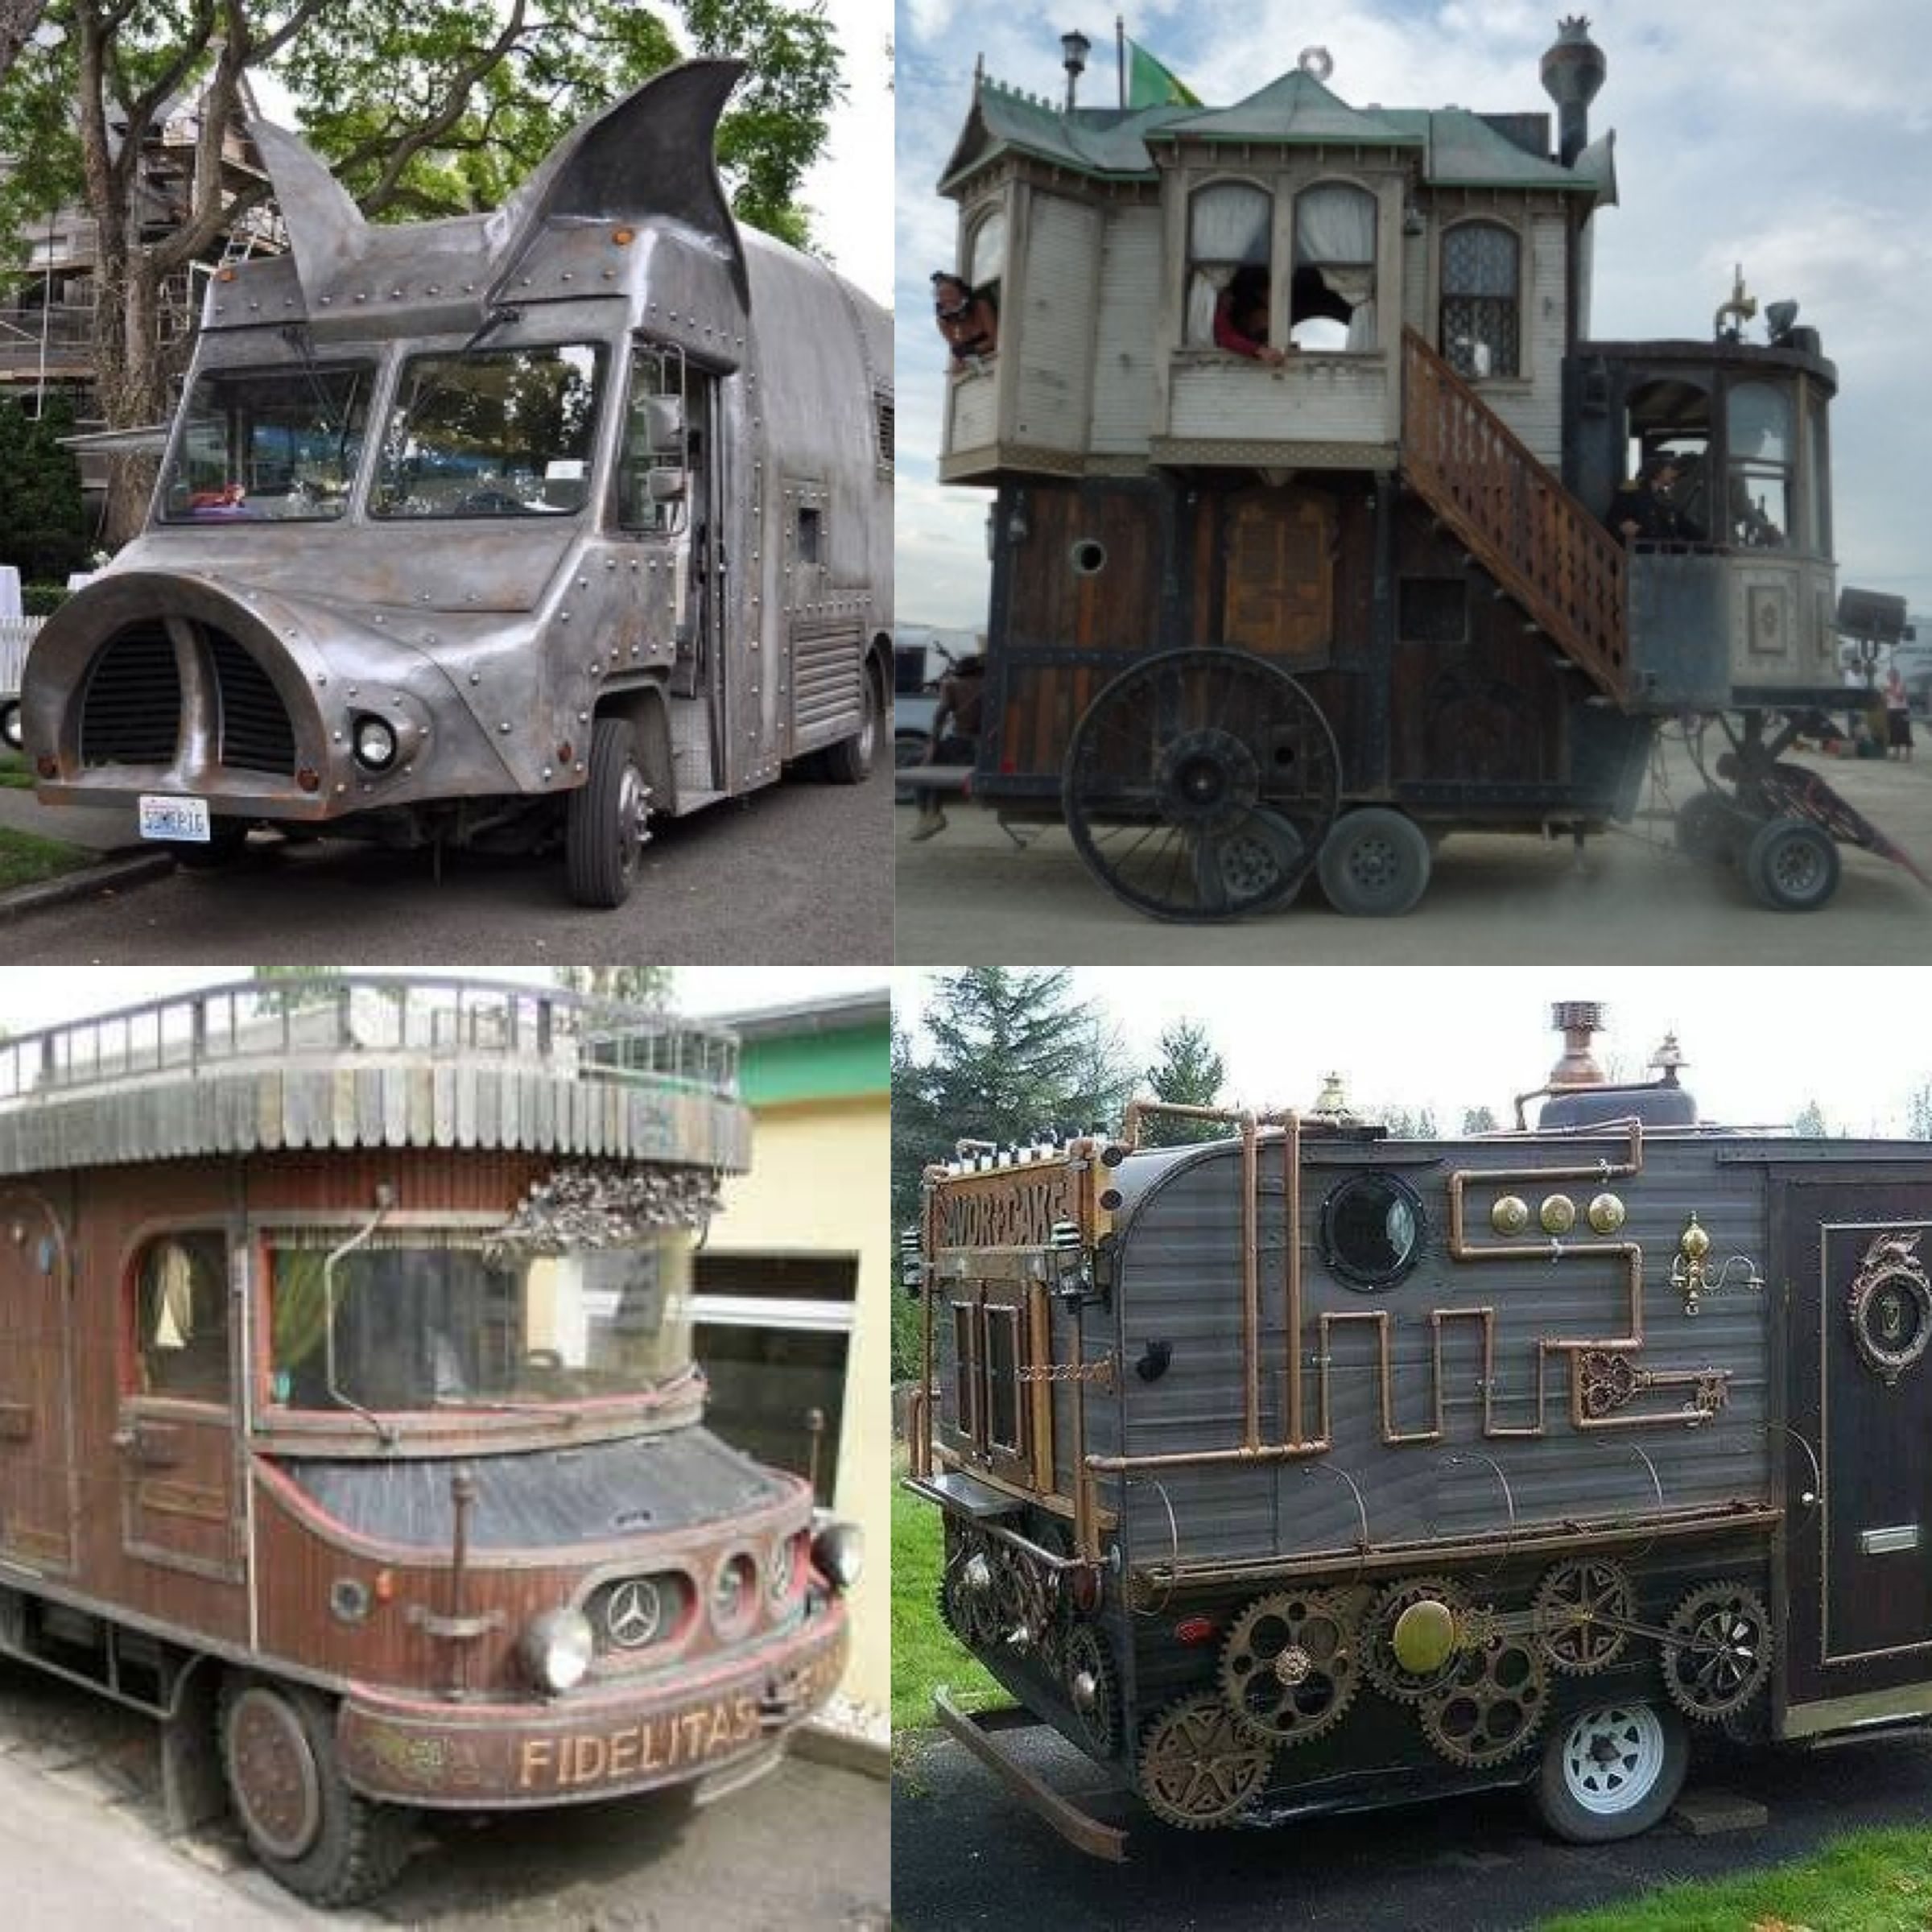 Steampunk RV camper anyone? Would be fun to see someone drive into a campground with one of these!! lol